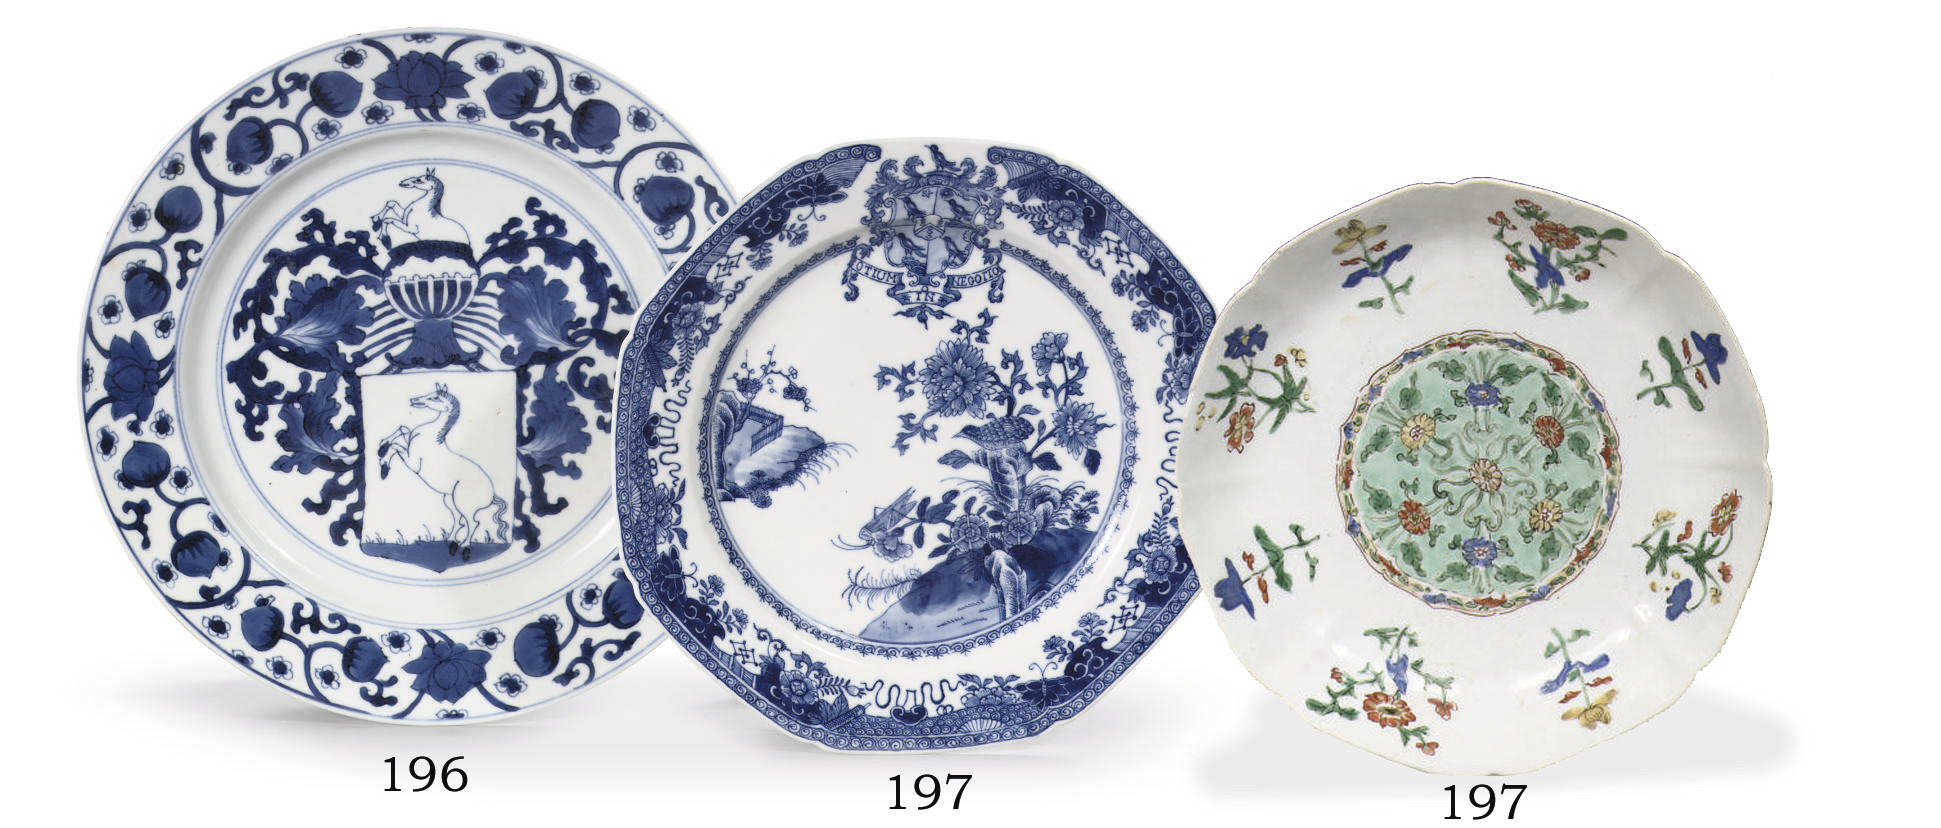 A blue and white armorial plat